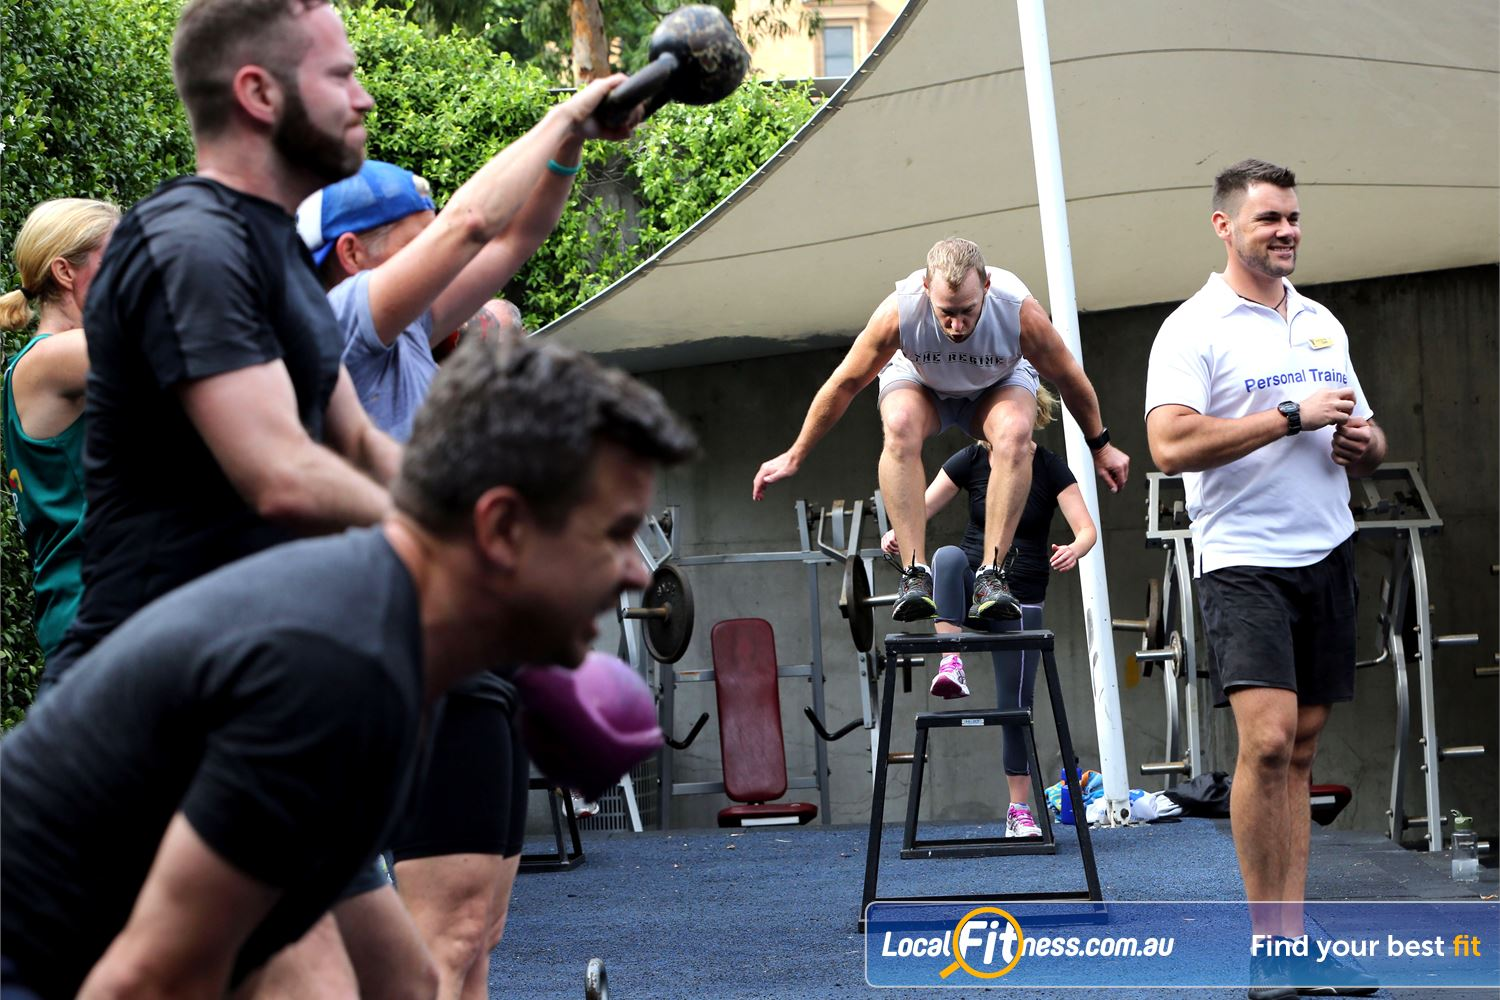 Cook and Phillip Park Aquatic and Fitness Centre Near World Square Small group personal training is a great way to burn calories and meet people.